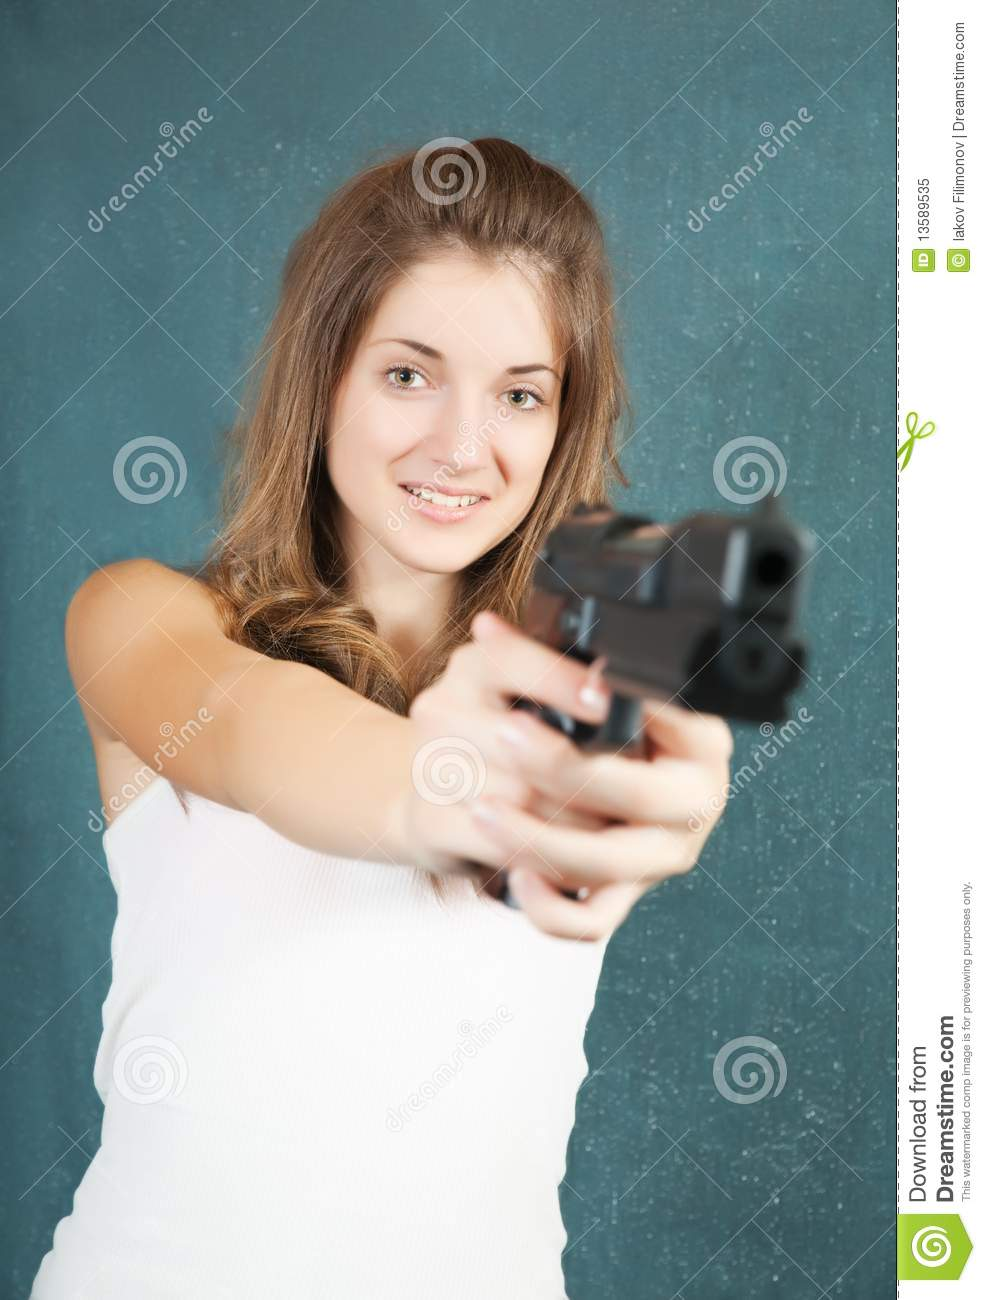 teen girl aiming a gun stock image image of action girl